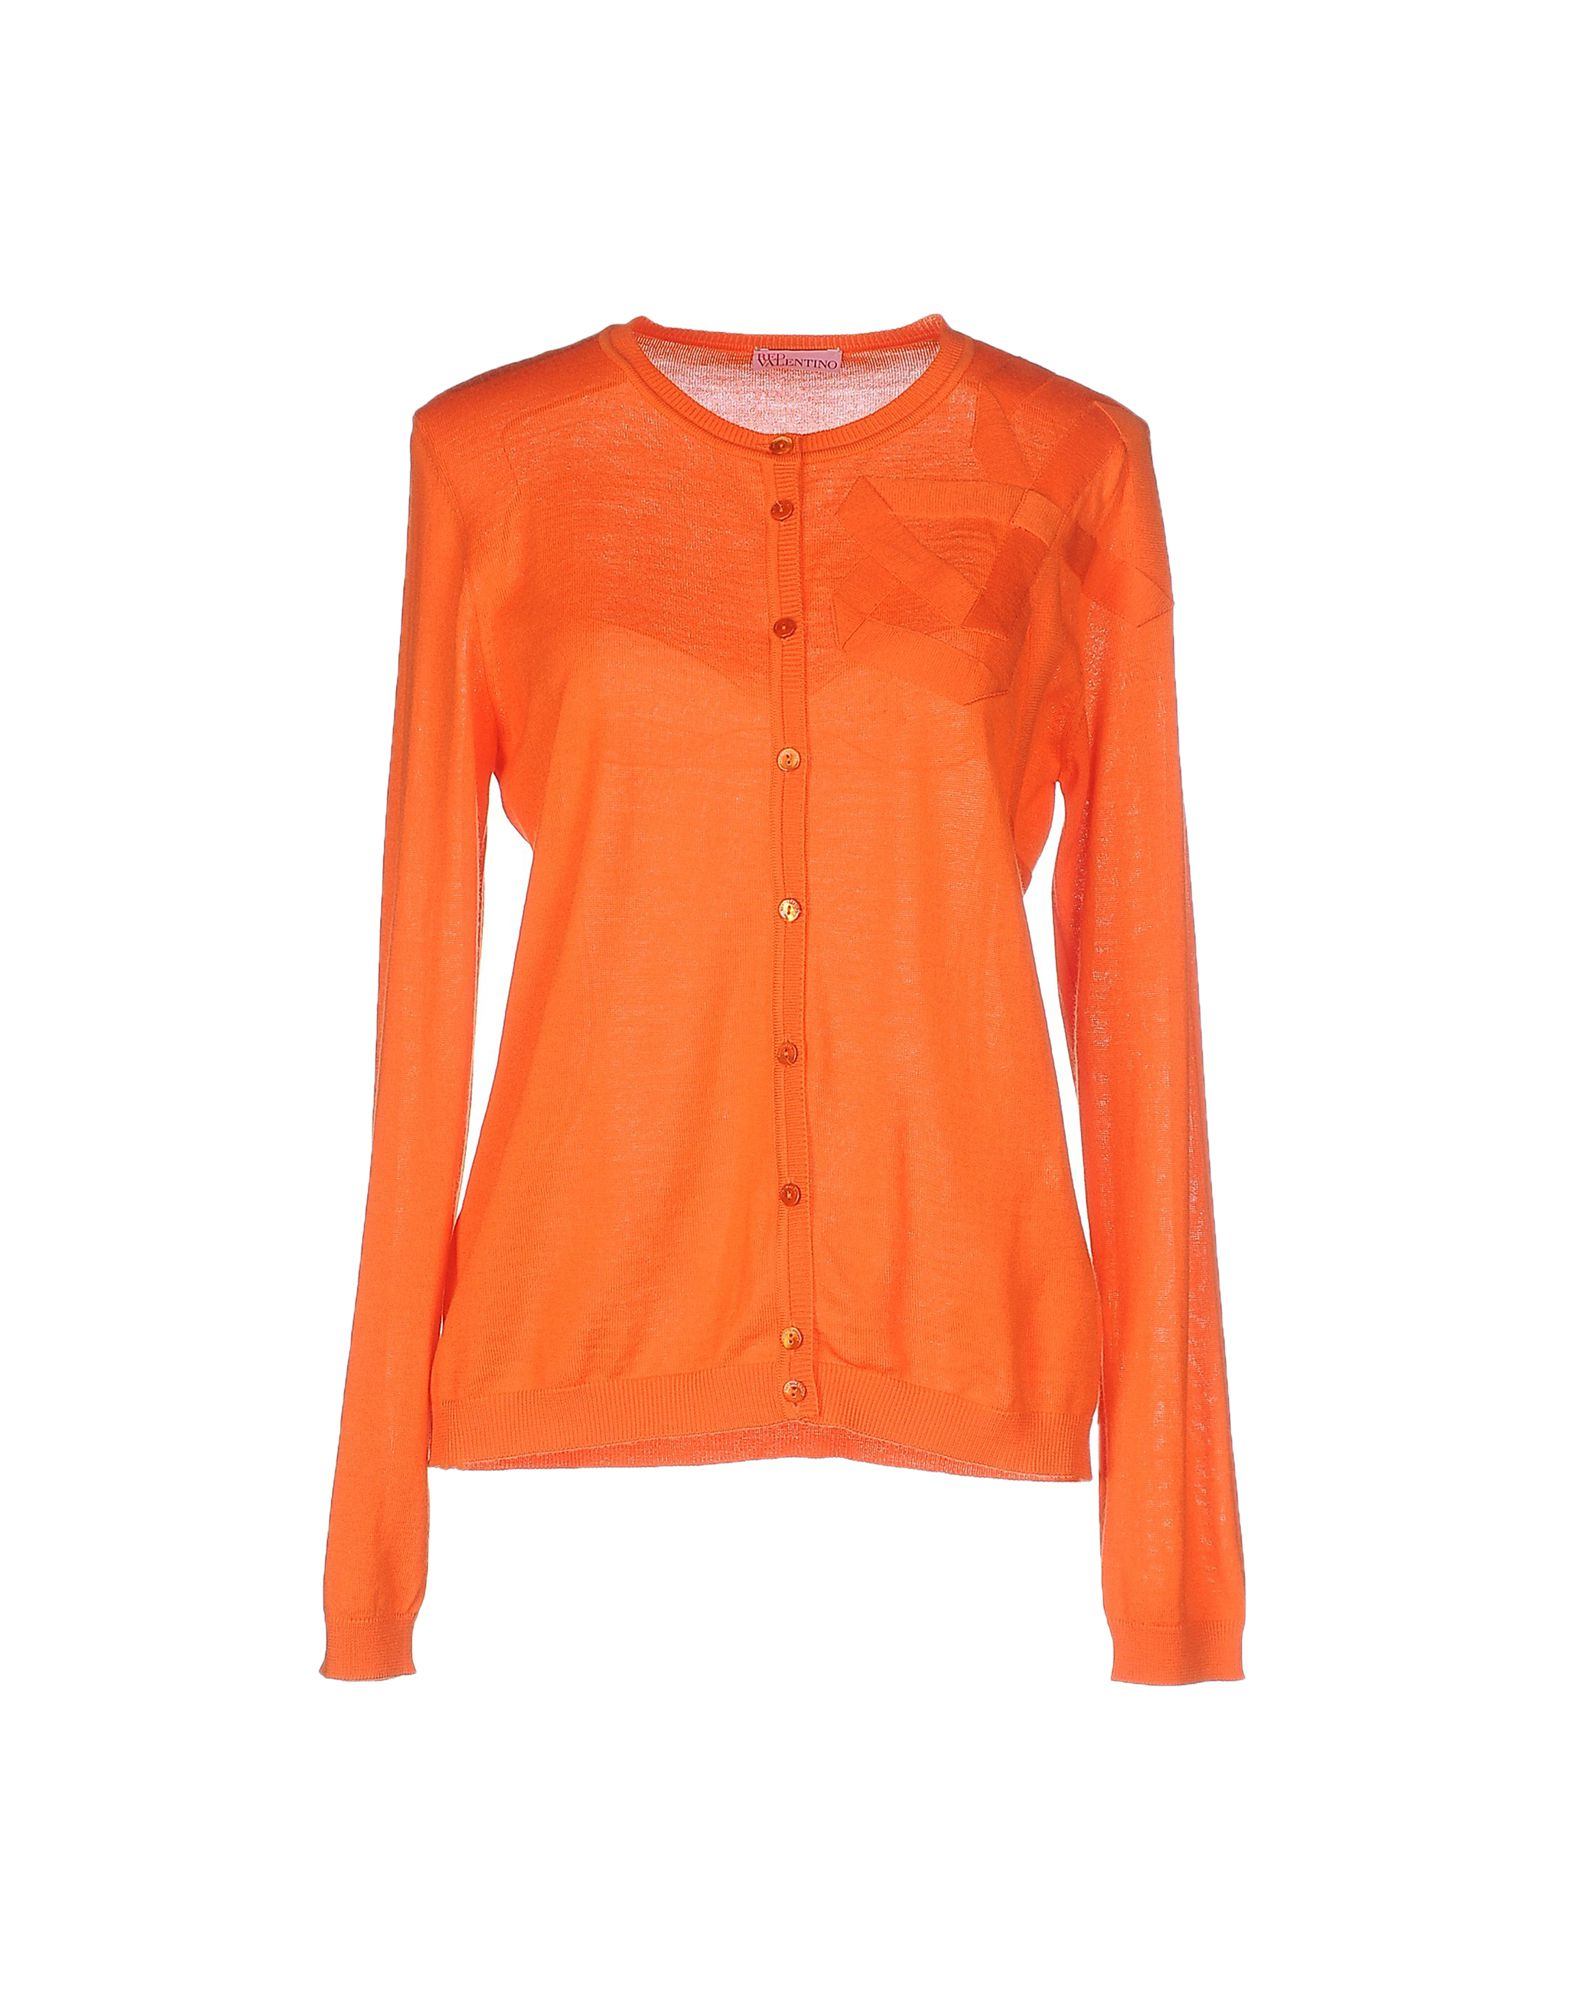 Red valentino Cardigan in Orange | Lyst